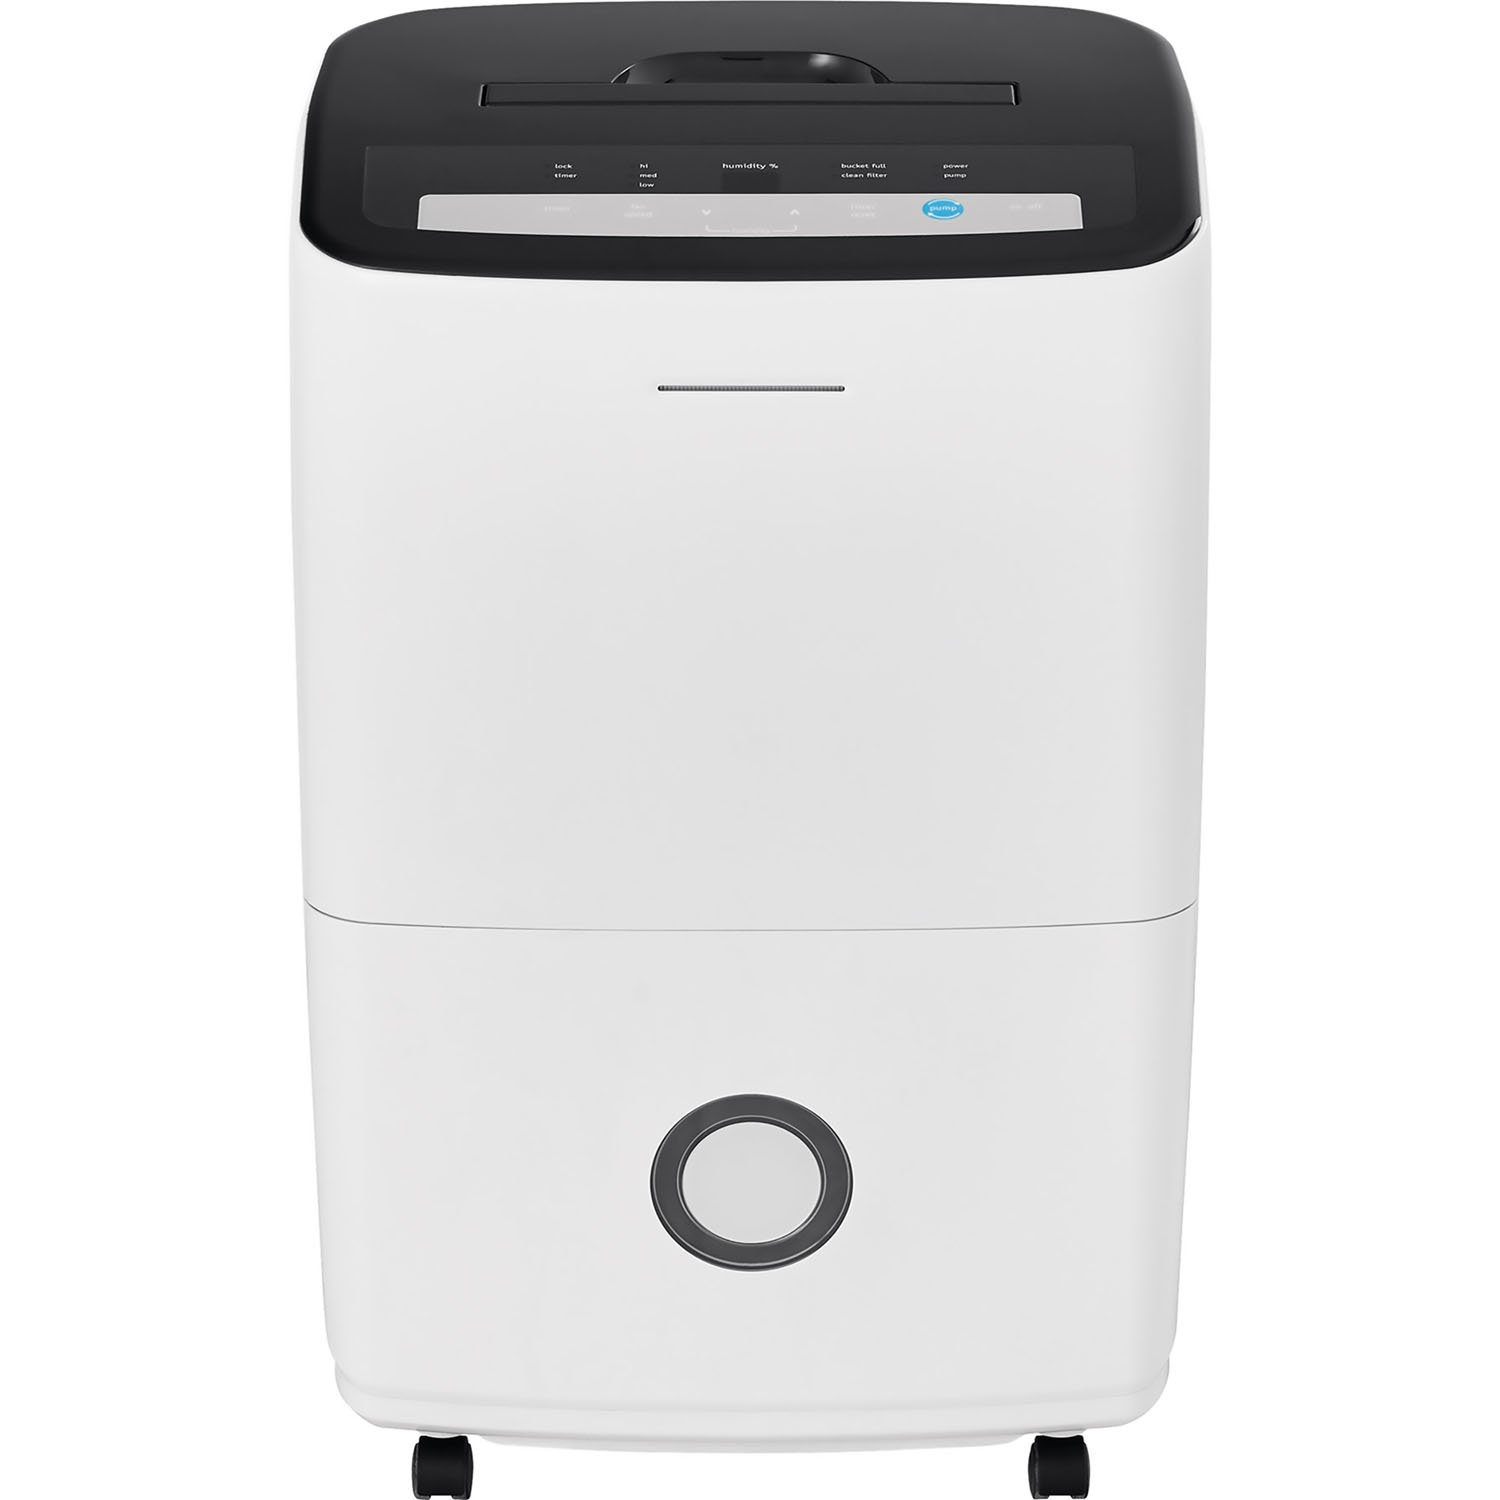 FRIGIDAIRE FFAP7033T1 70 13.1-Pint Bucket Capacity, Mesh Filter and Effortless Humidity Control Dehumidifier with Built-in Pump in White, by FRIGIDAIRE